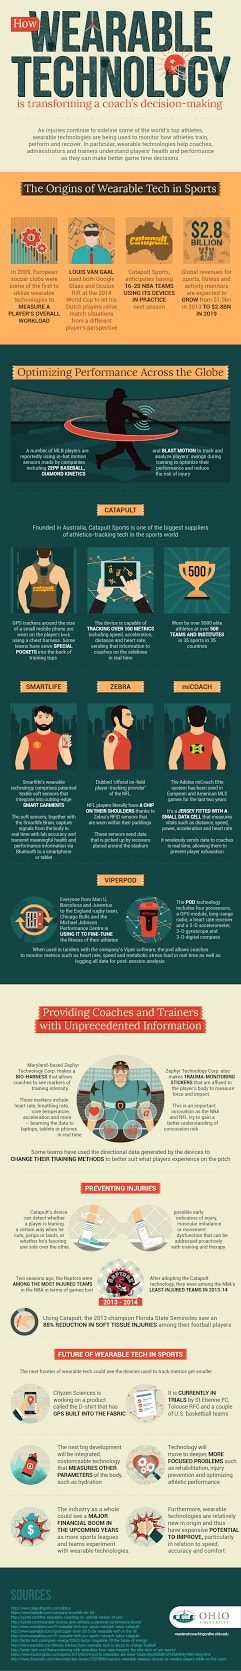 How Wearable Tech is Transforming a Coach's Decision-Making infographic